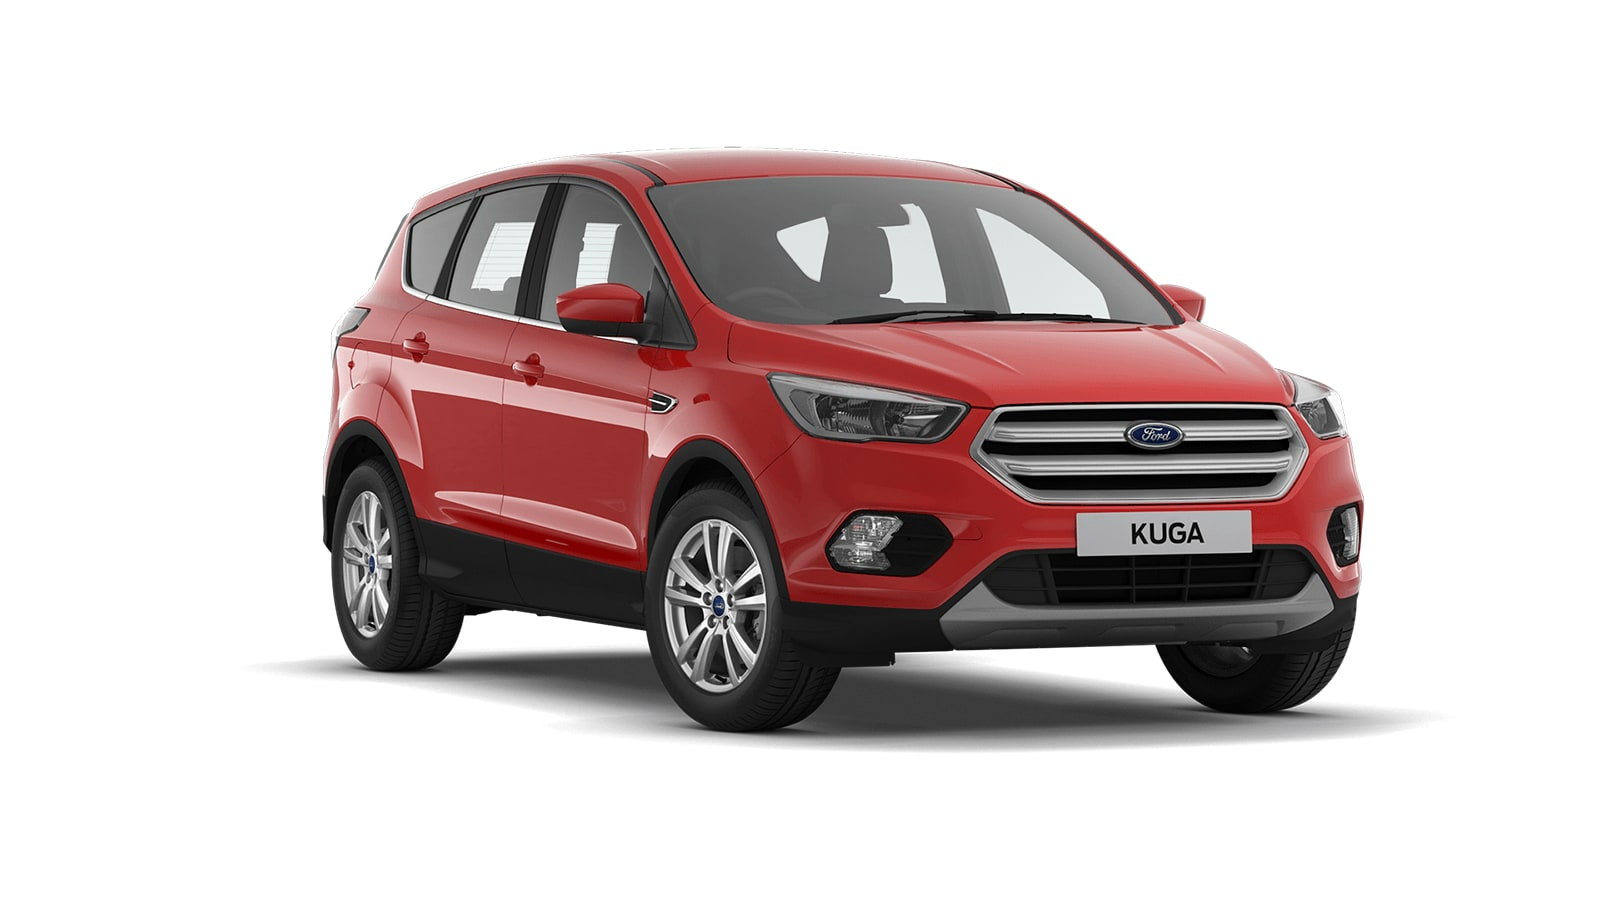 Ford Kuga at Browne & Day